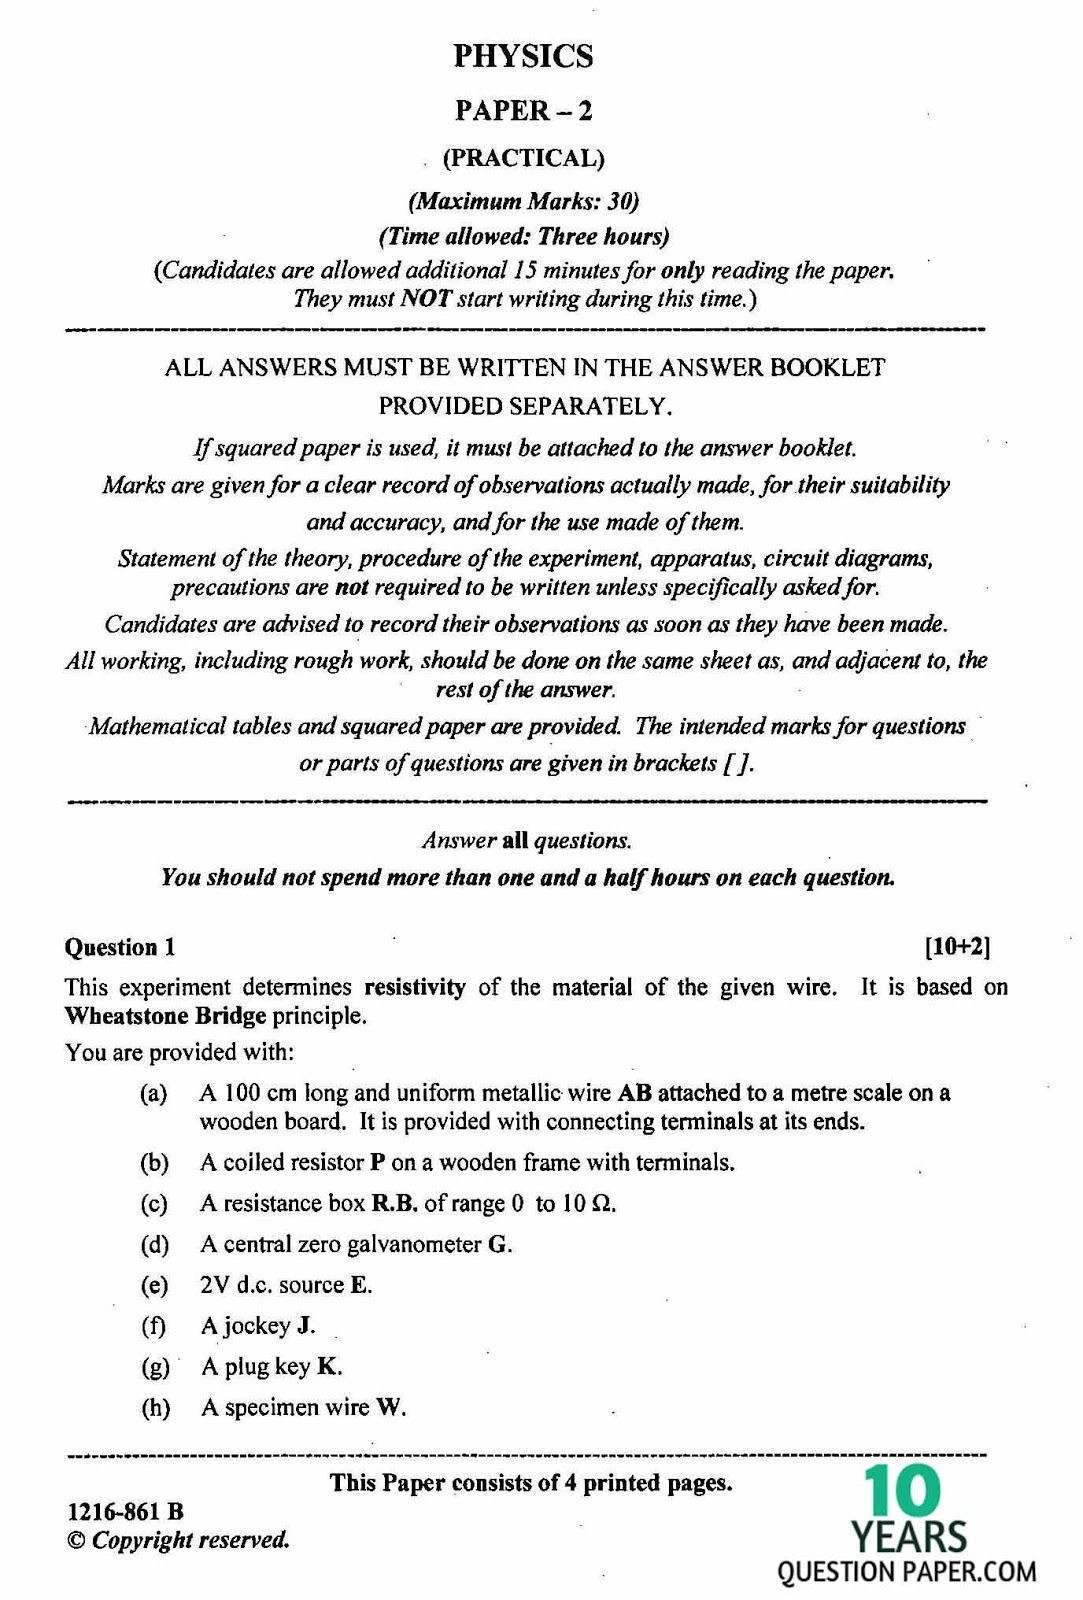 isc 2016 class 12th Physics Paper-2 Practical question paper